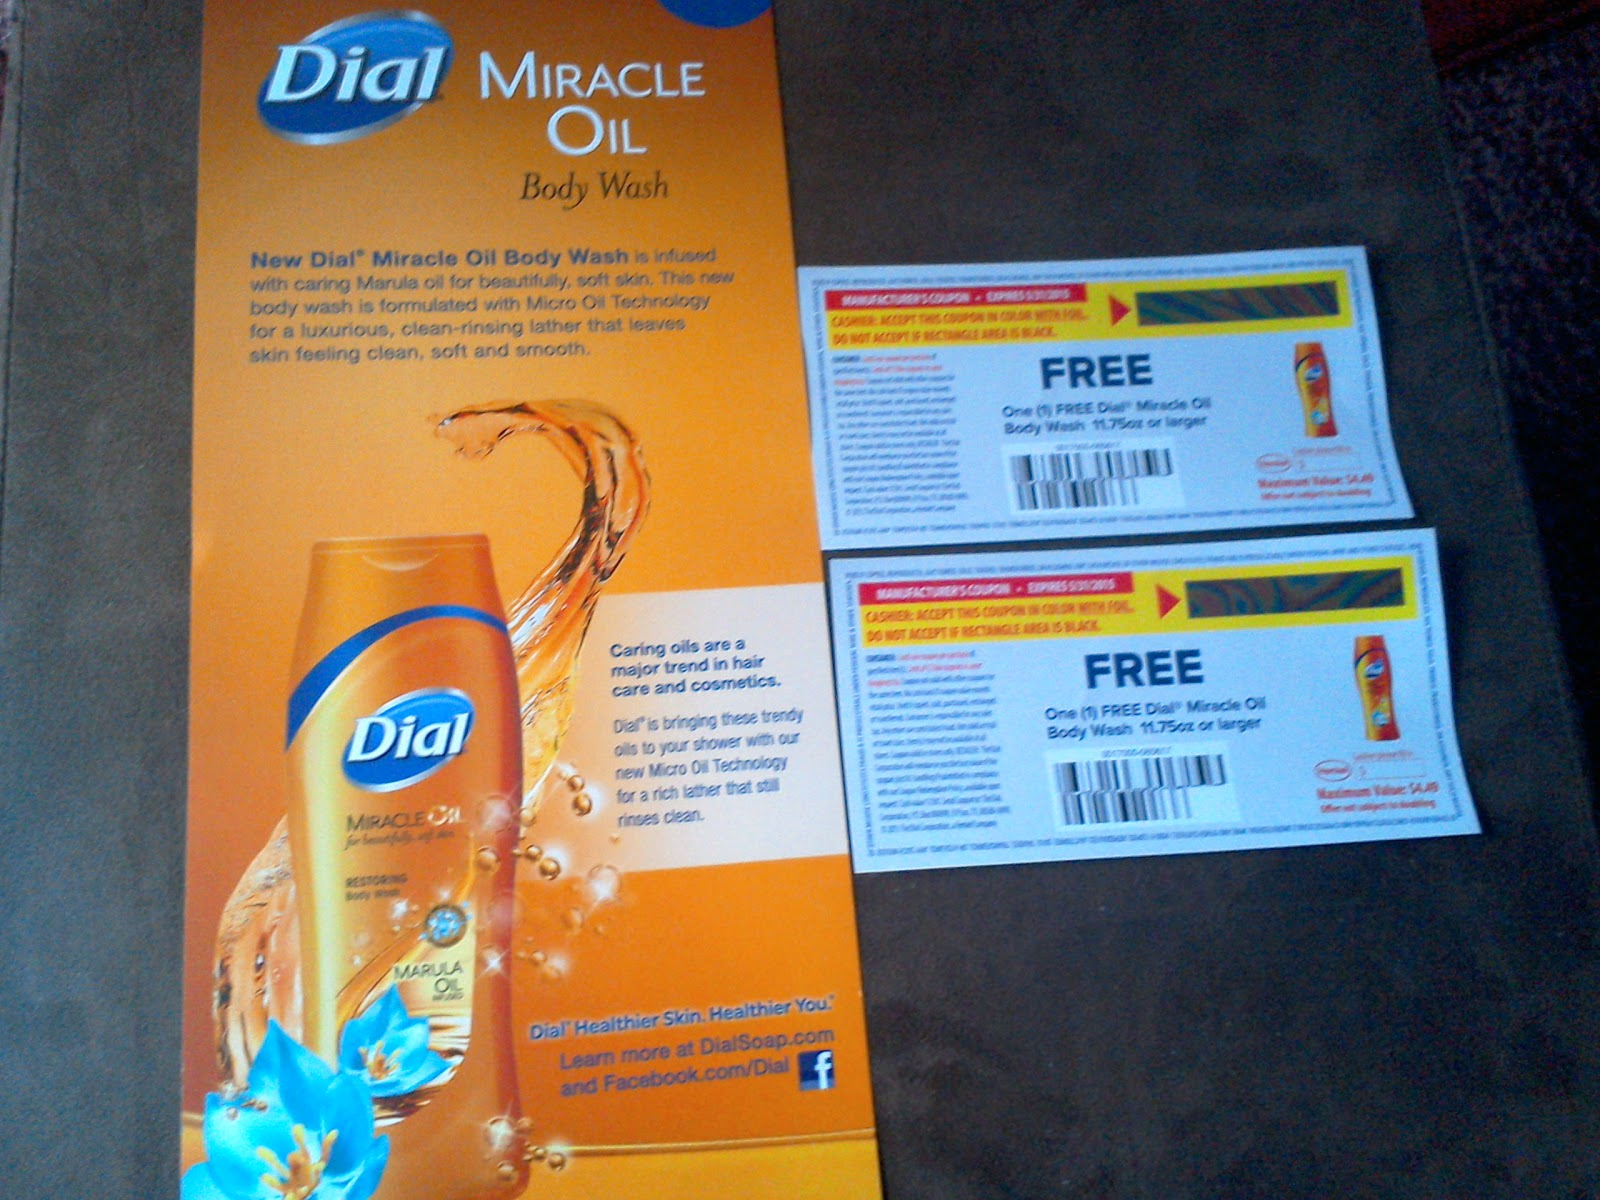 Dial products coupons